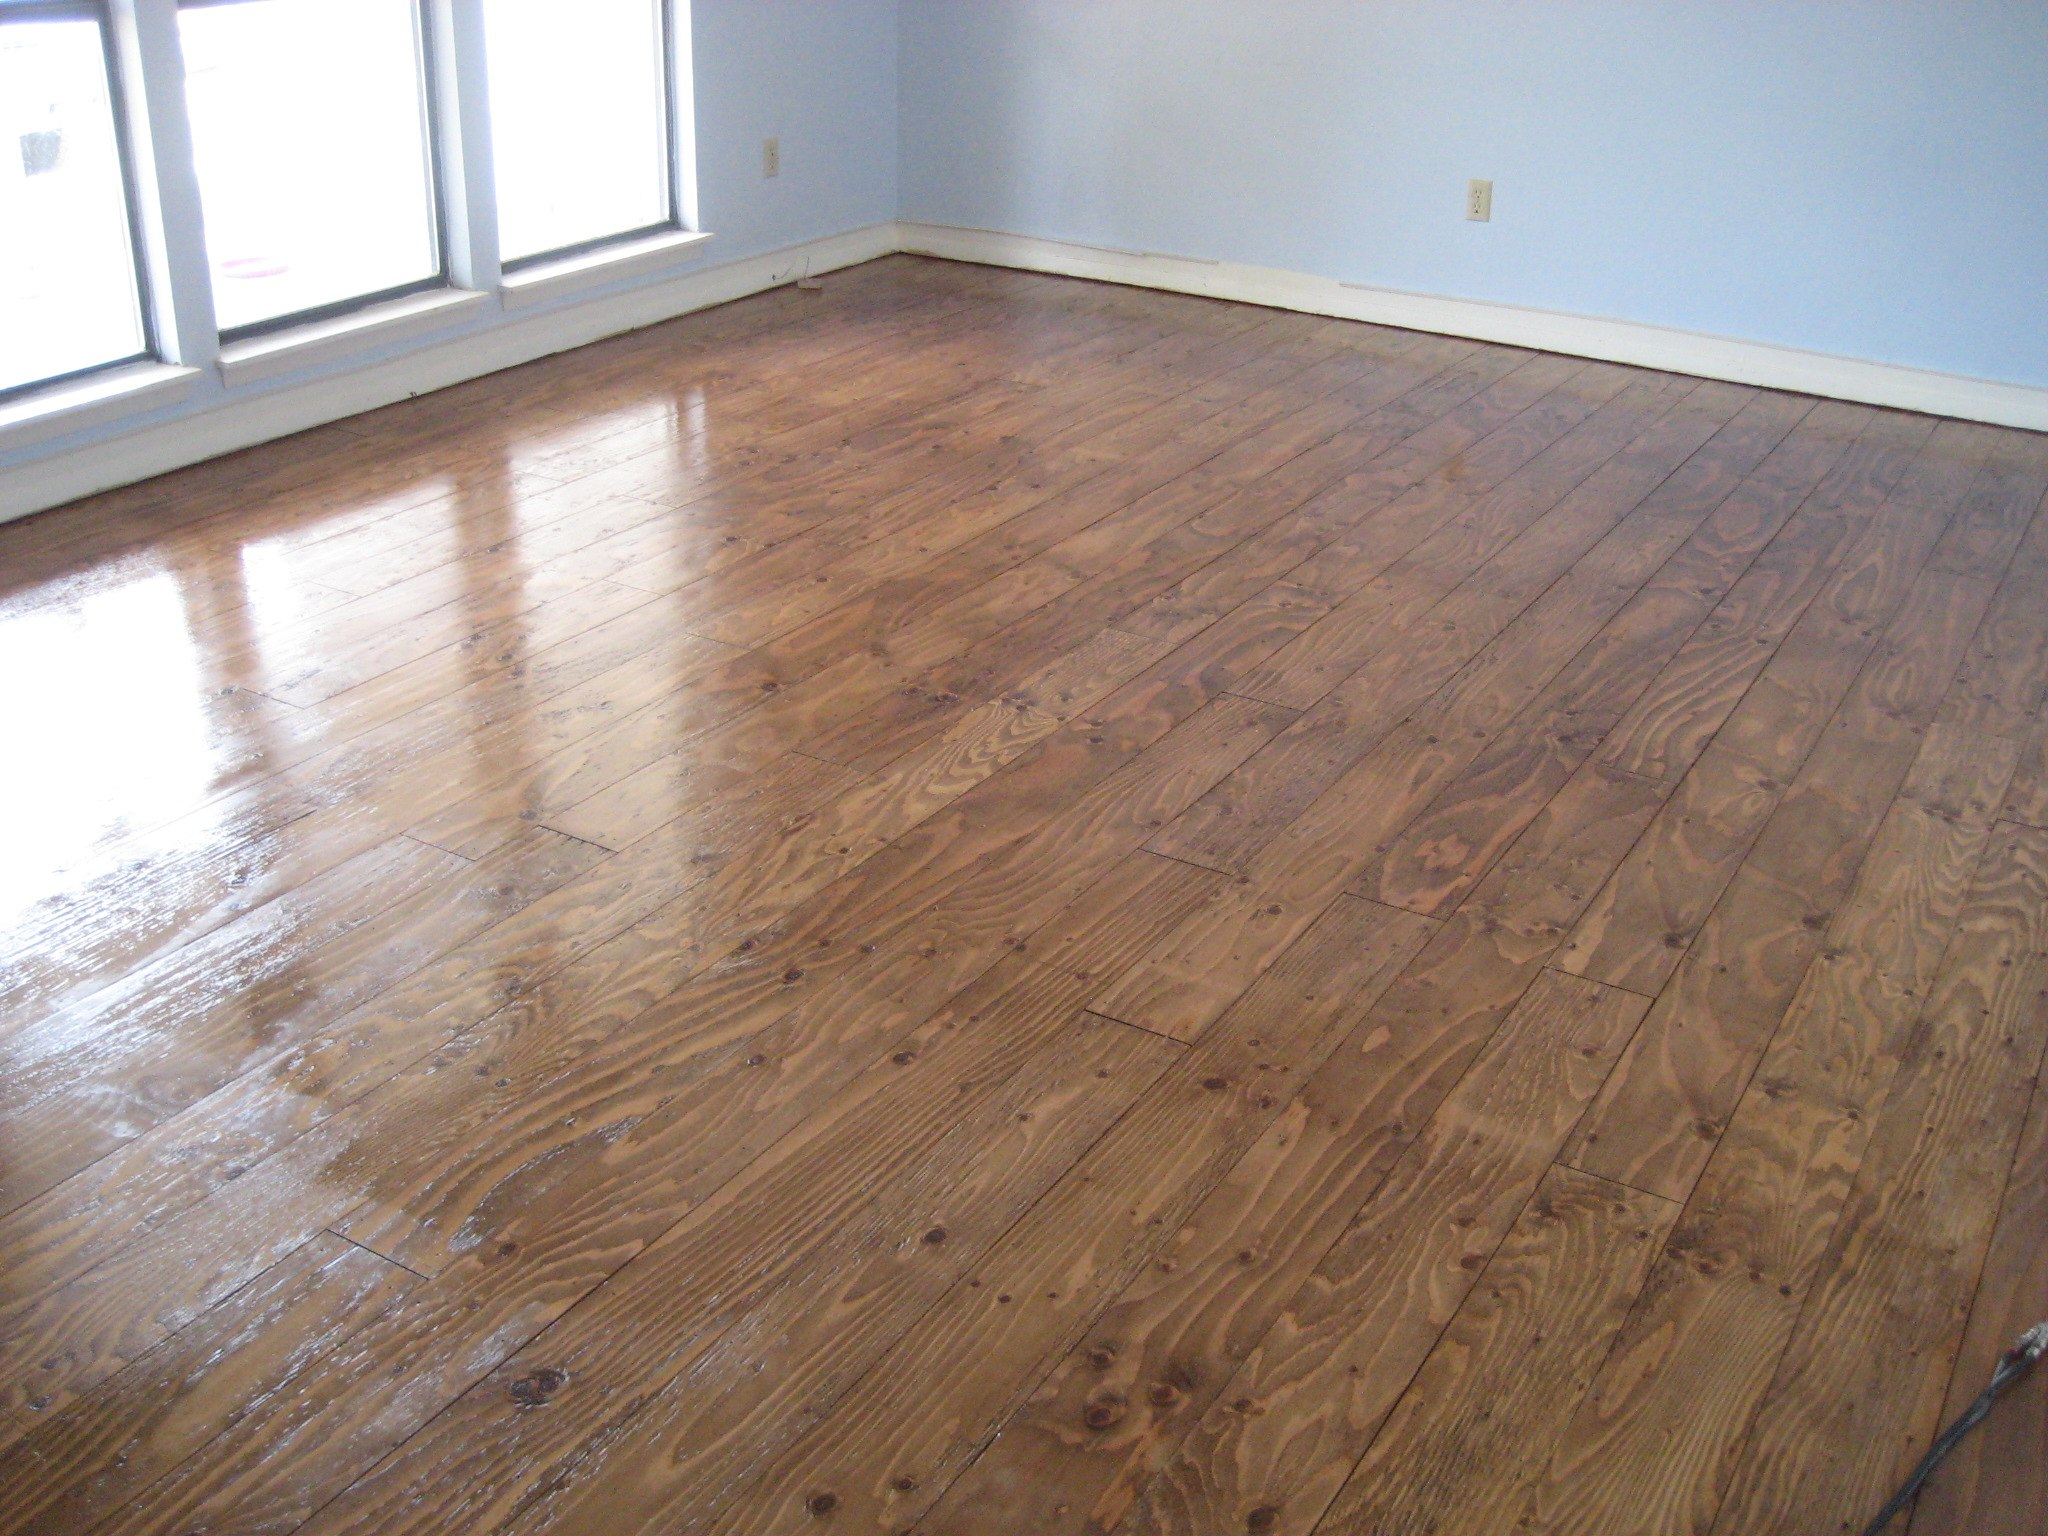 ... Comments Plywood Hardwood Floor